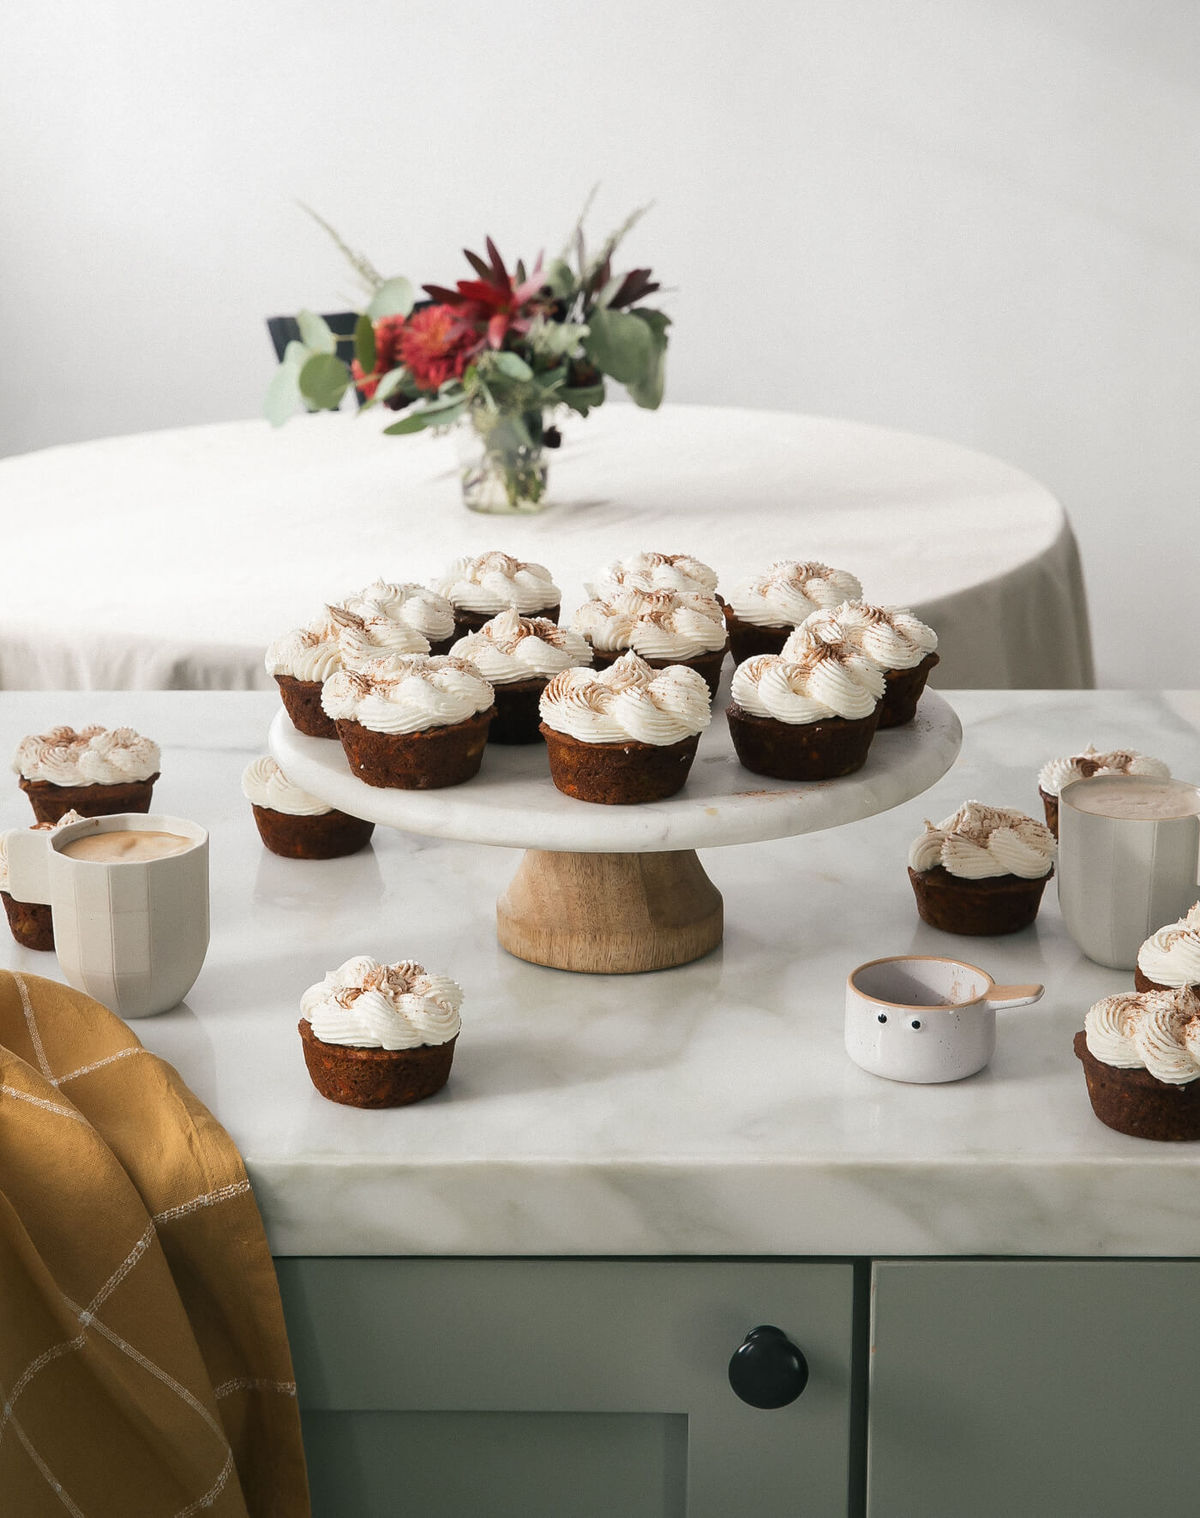 Masala-Chai Carrot Cupcakes with Spiced Frosting